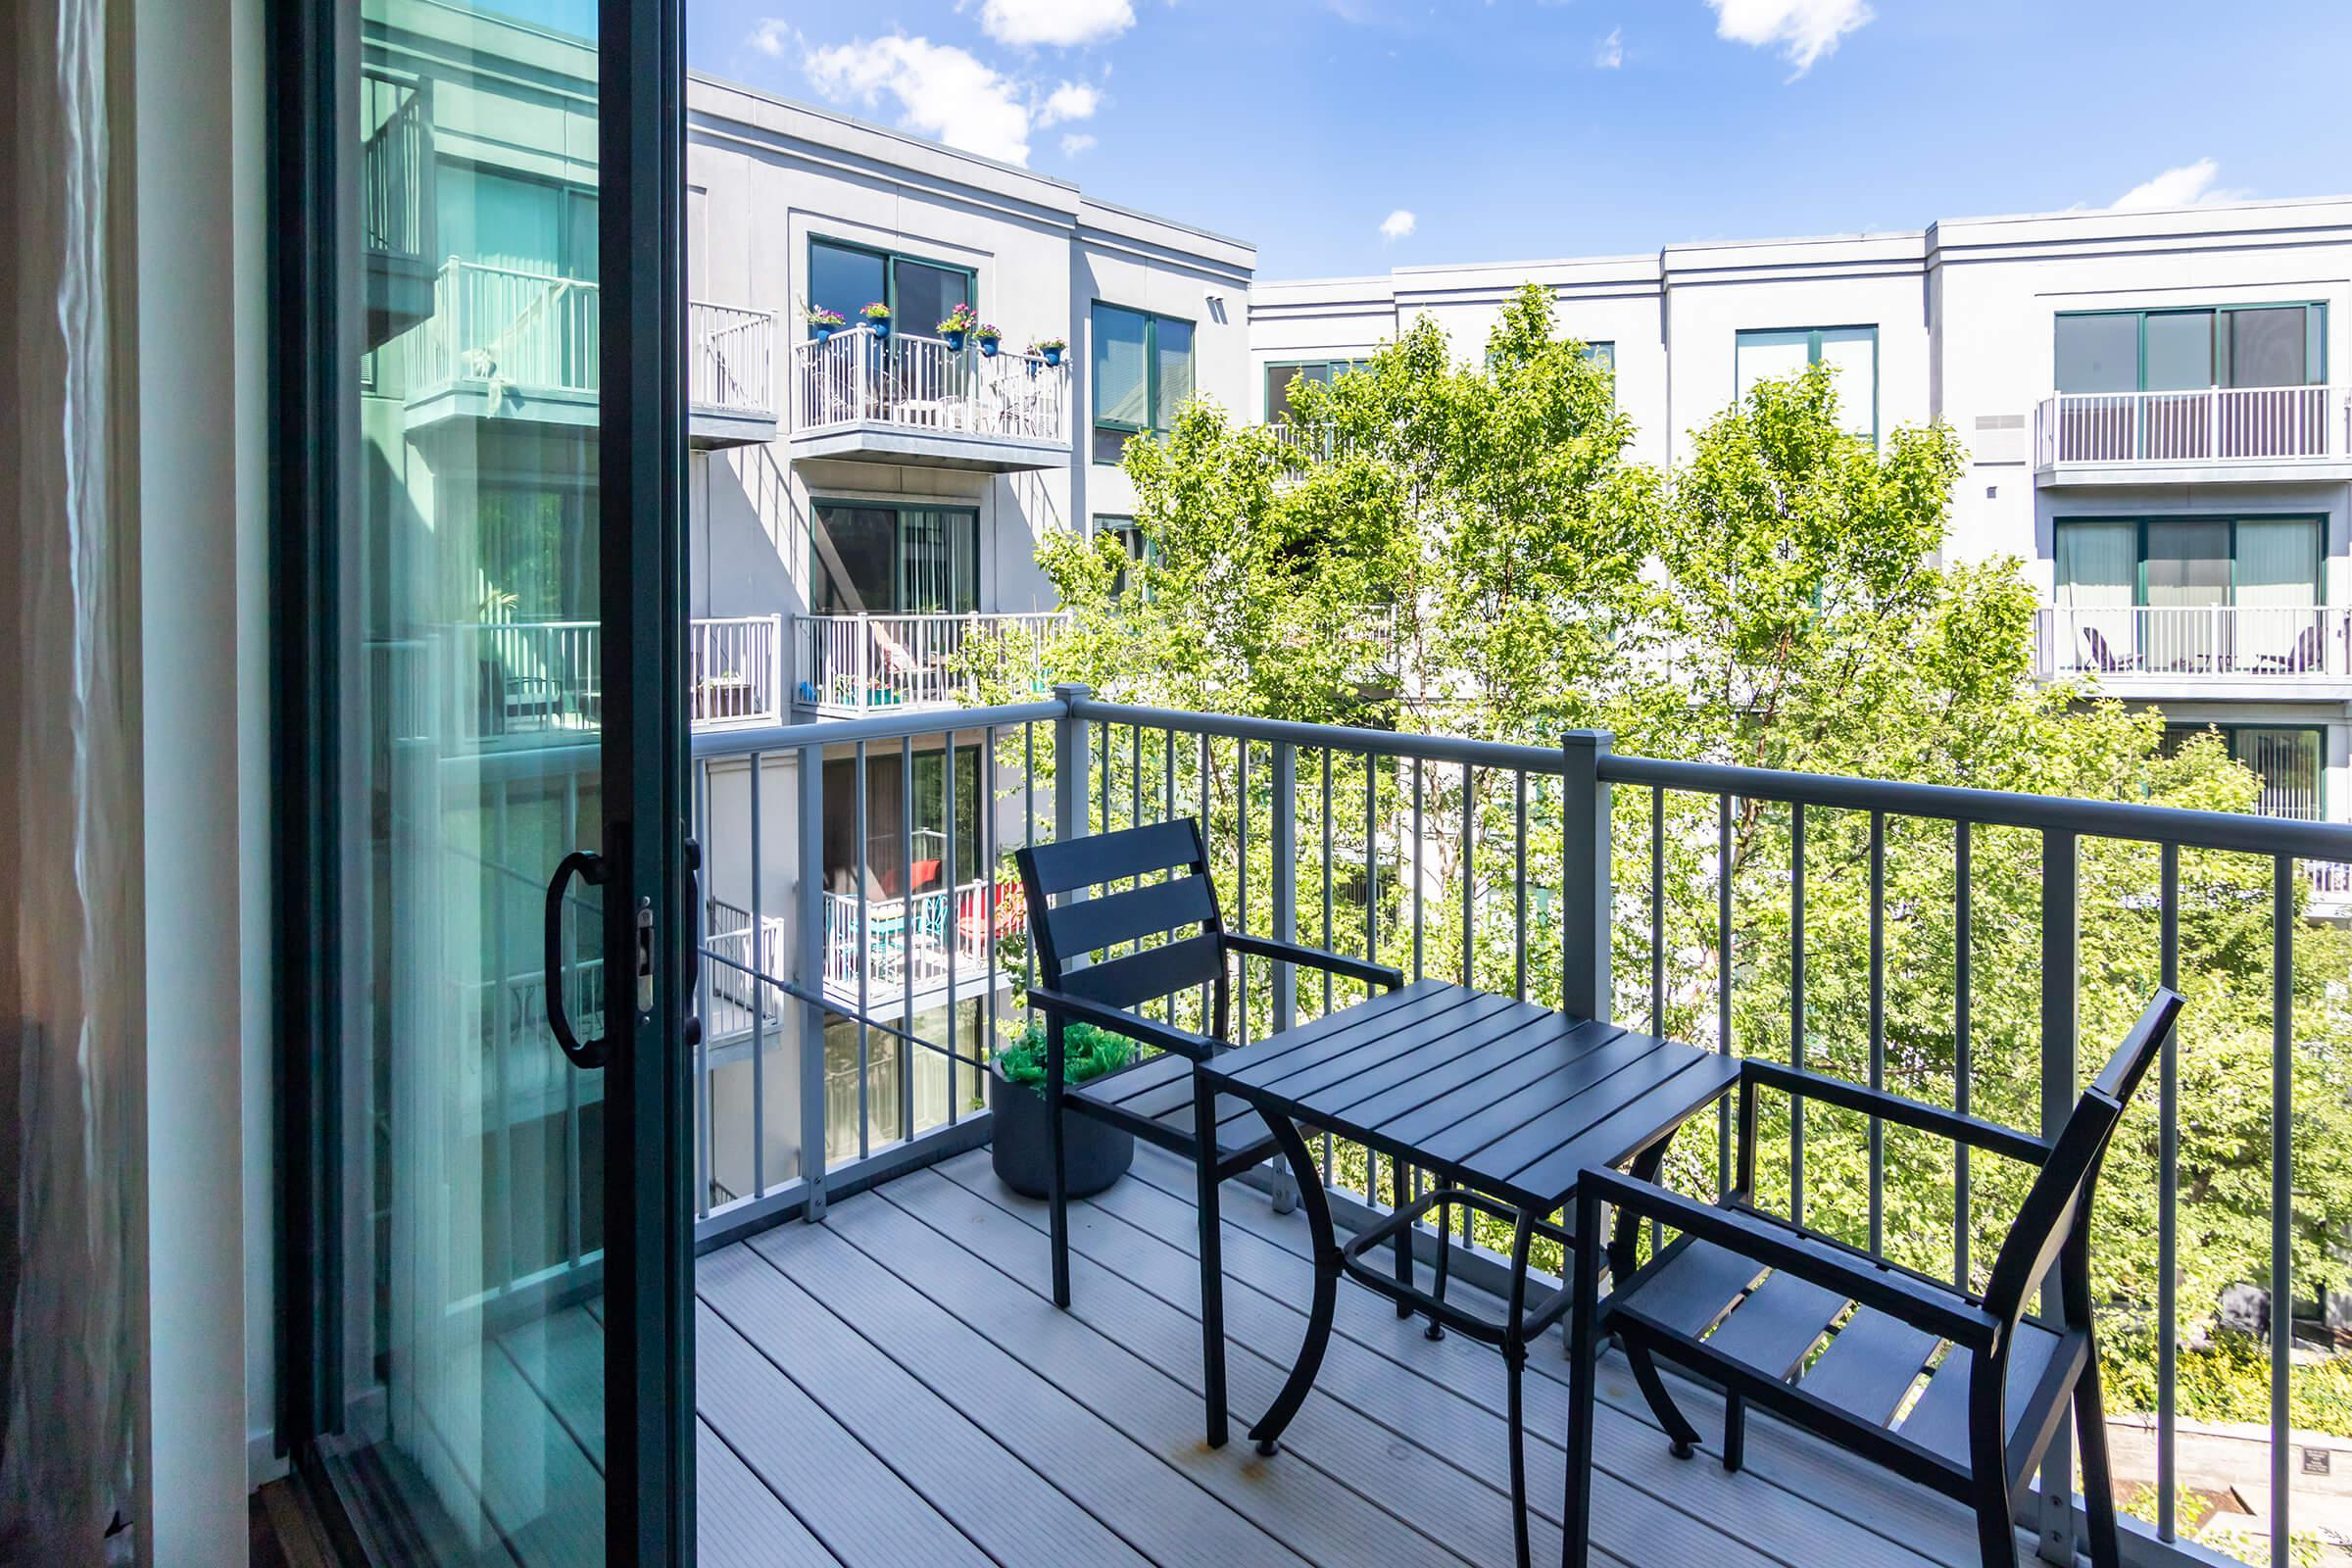 TAKE IN THE VIEWS FROM YOUR BALCONY